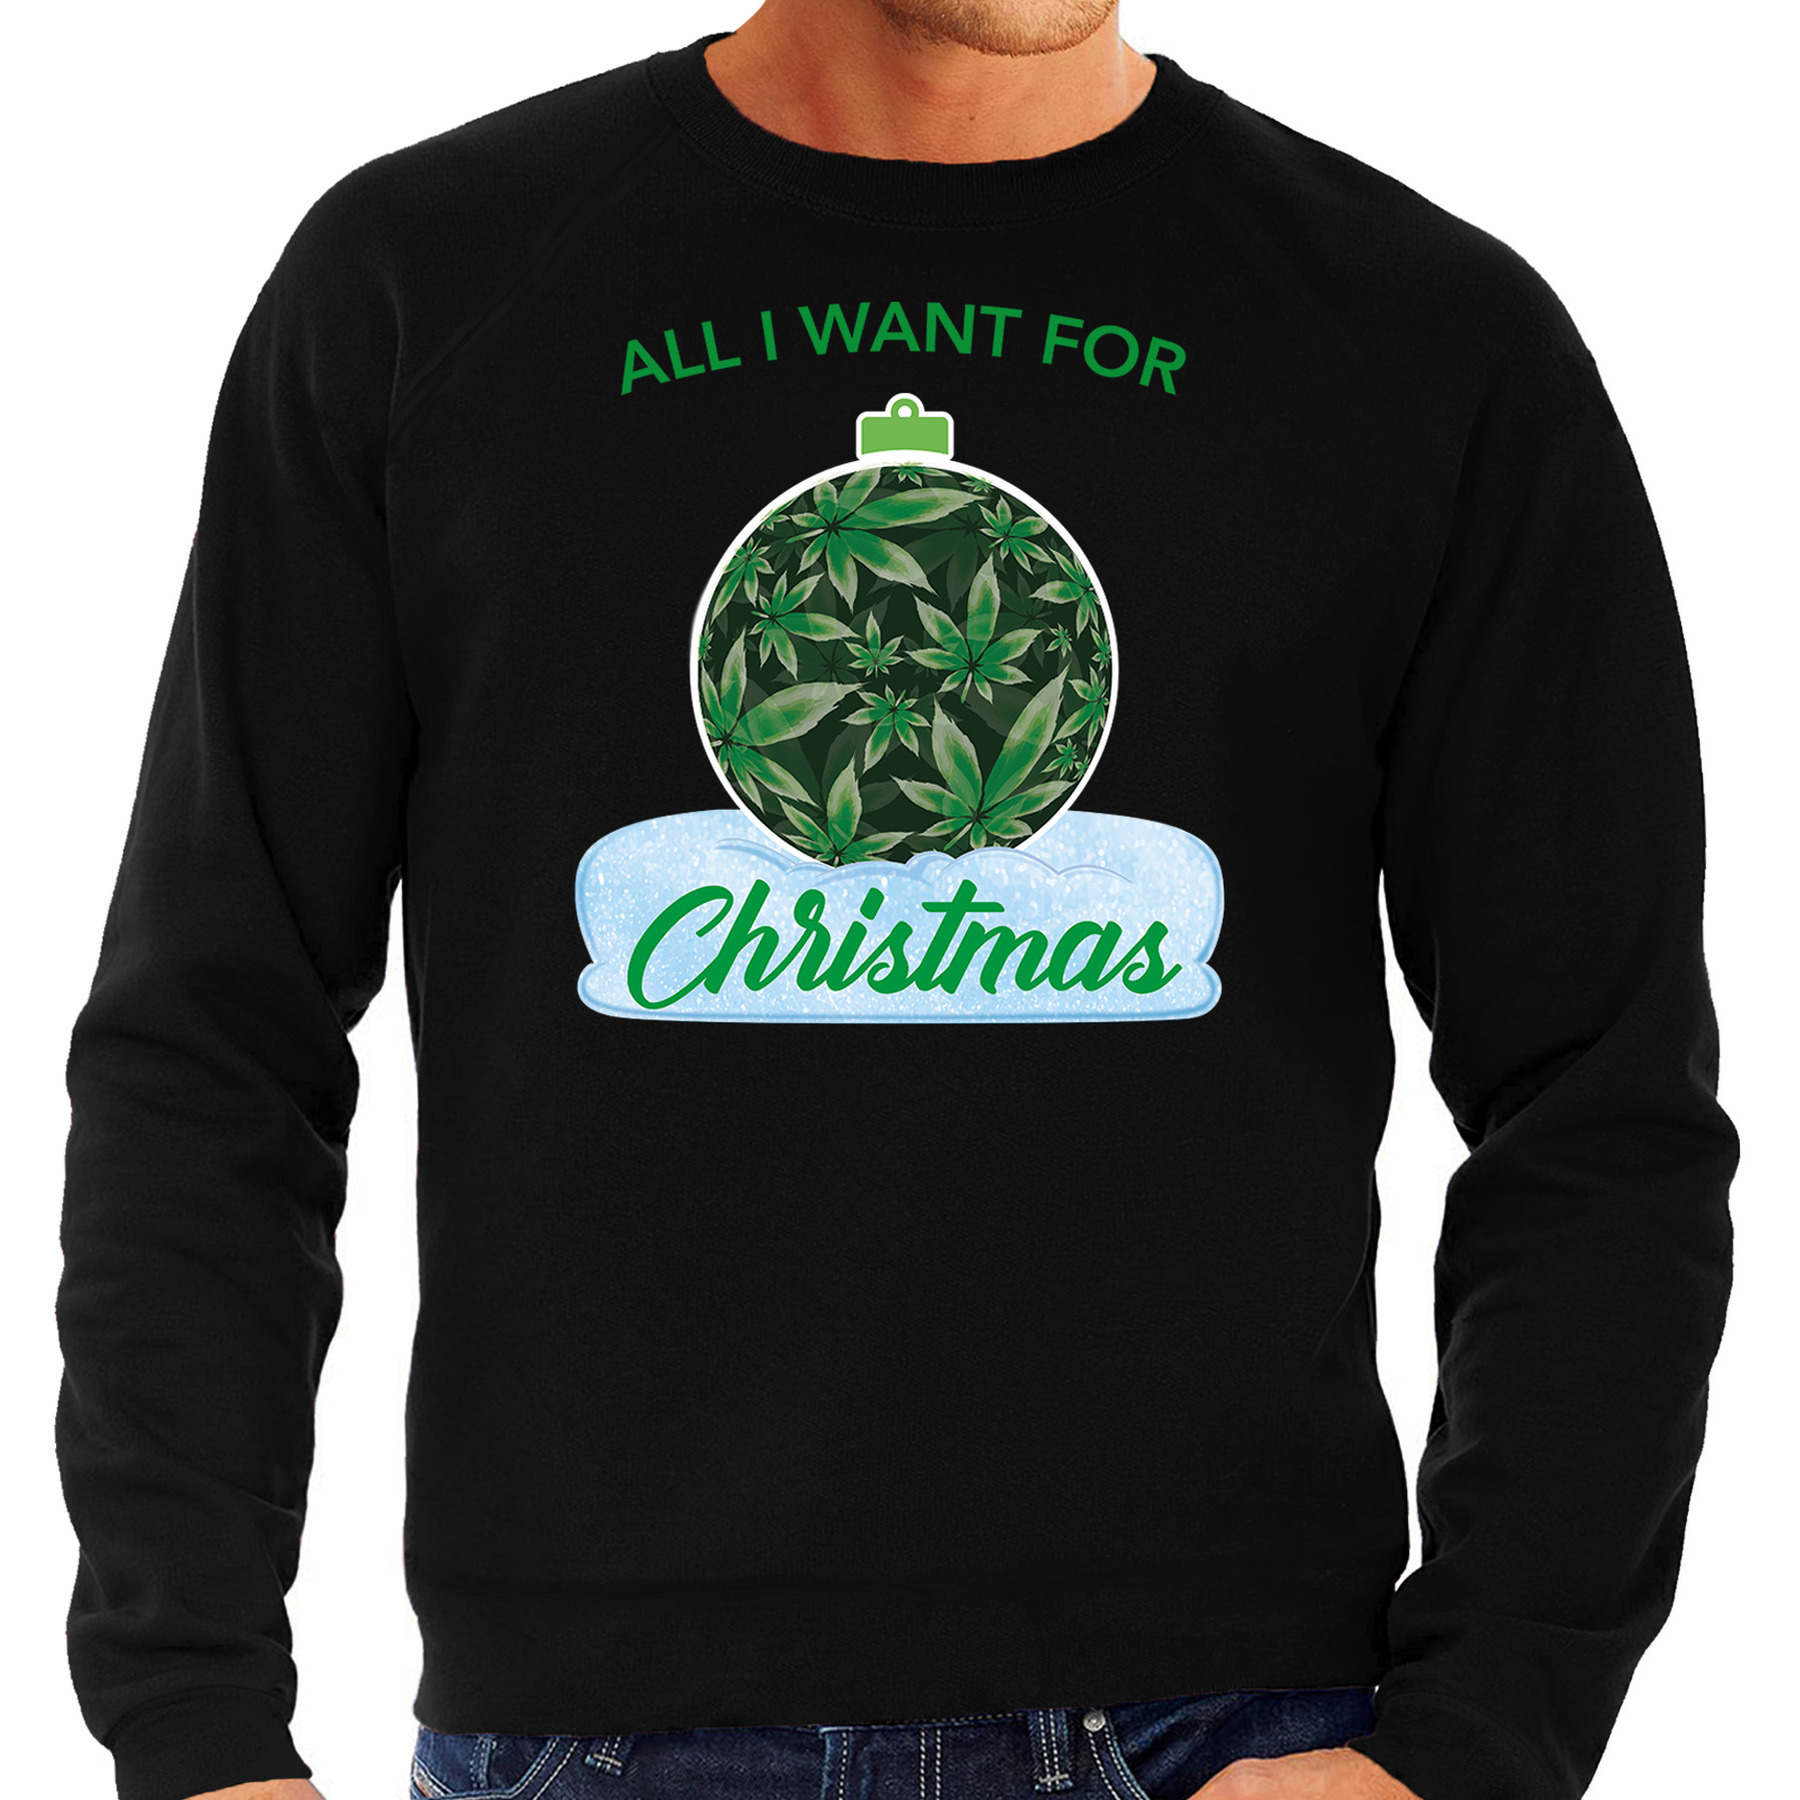 Wiet kerstbal sweater outfit all i want for christmas zwart voor heren